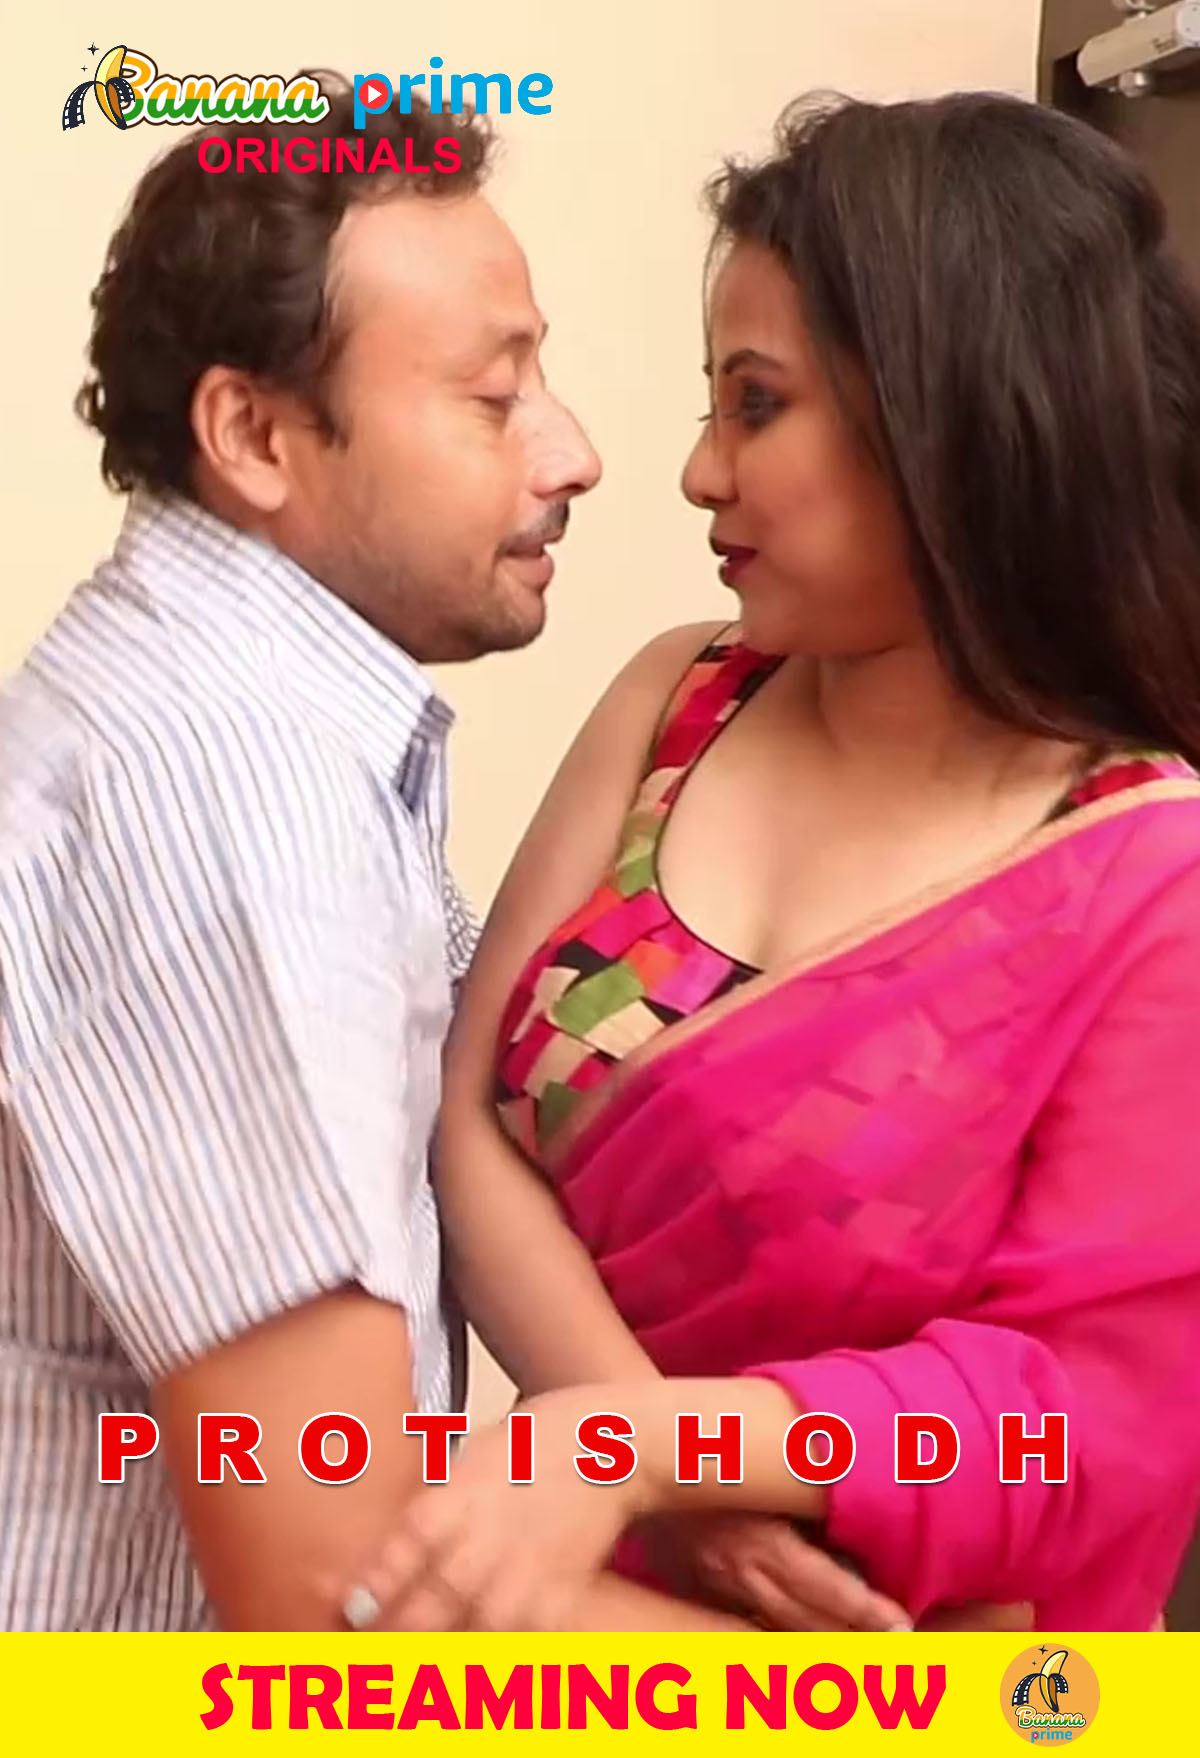 Protishodh 2020 BananaPrime Originals Bengali Short Film 720p HDRip 89MB Download